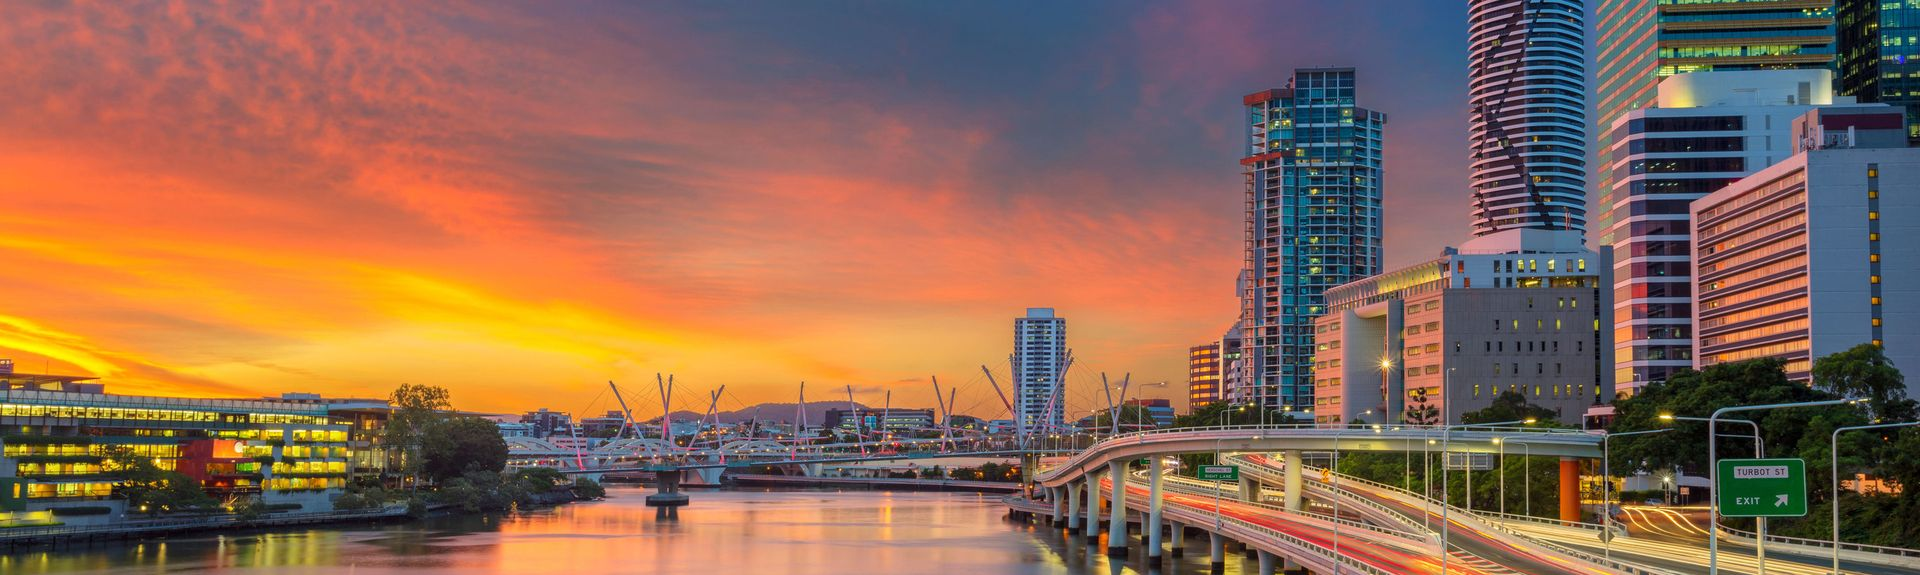 Brisbane City, Queensland, Australien